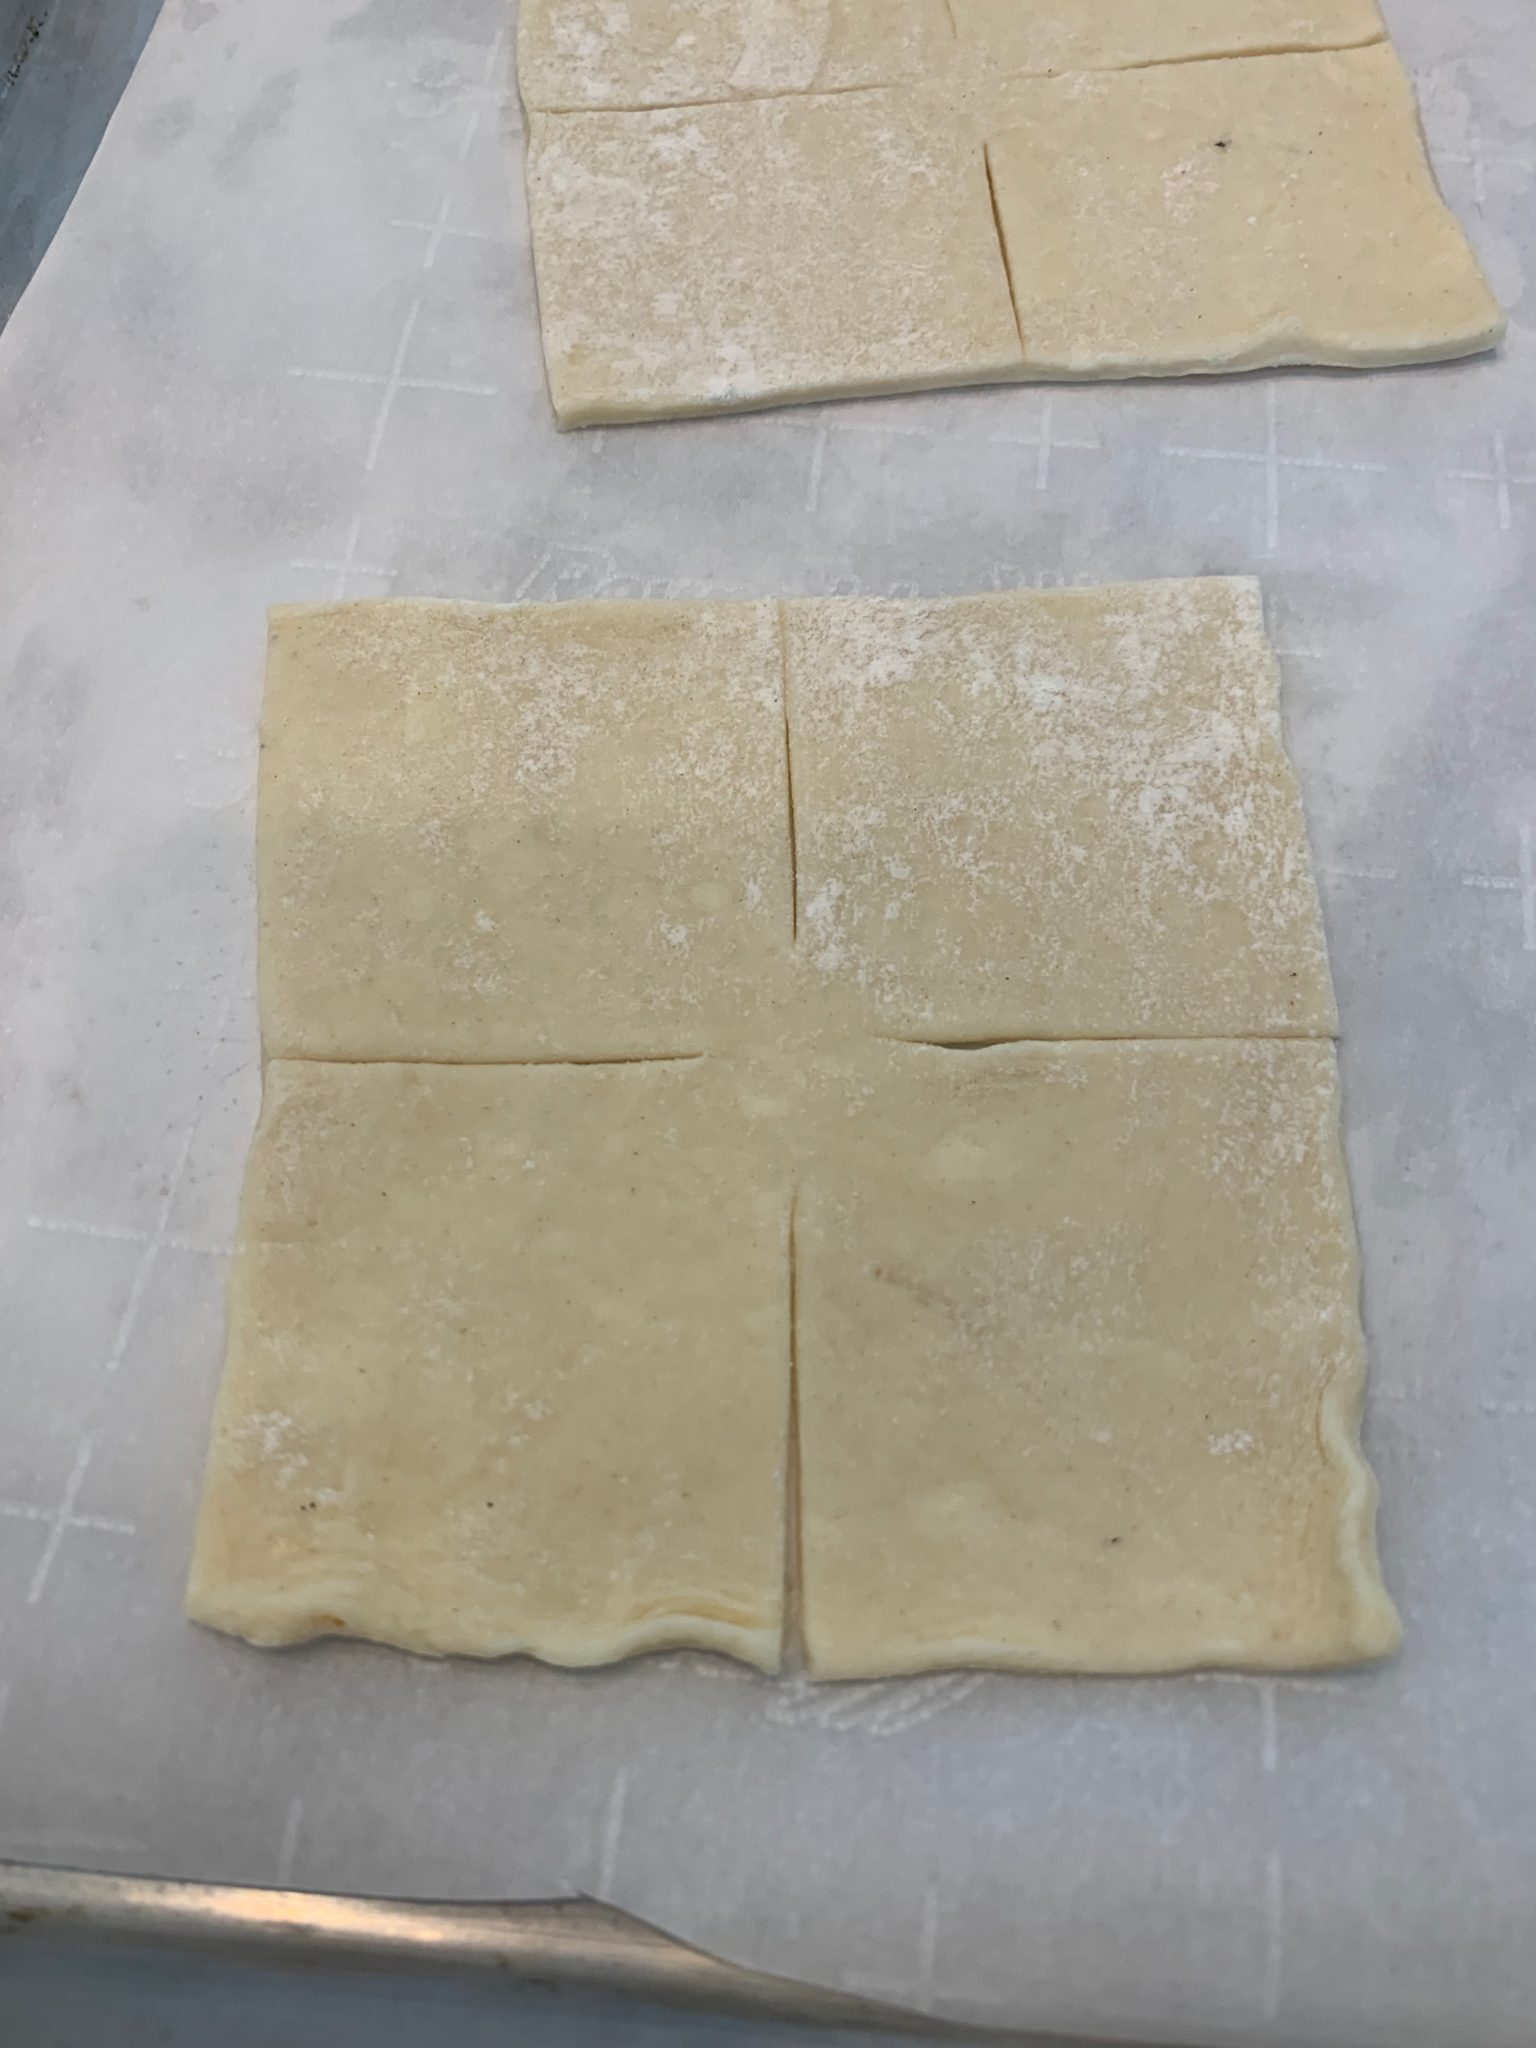 Sqaure of raw pastry for Danish pocket